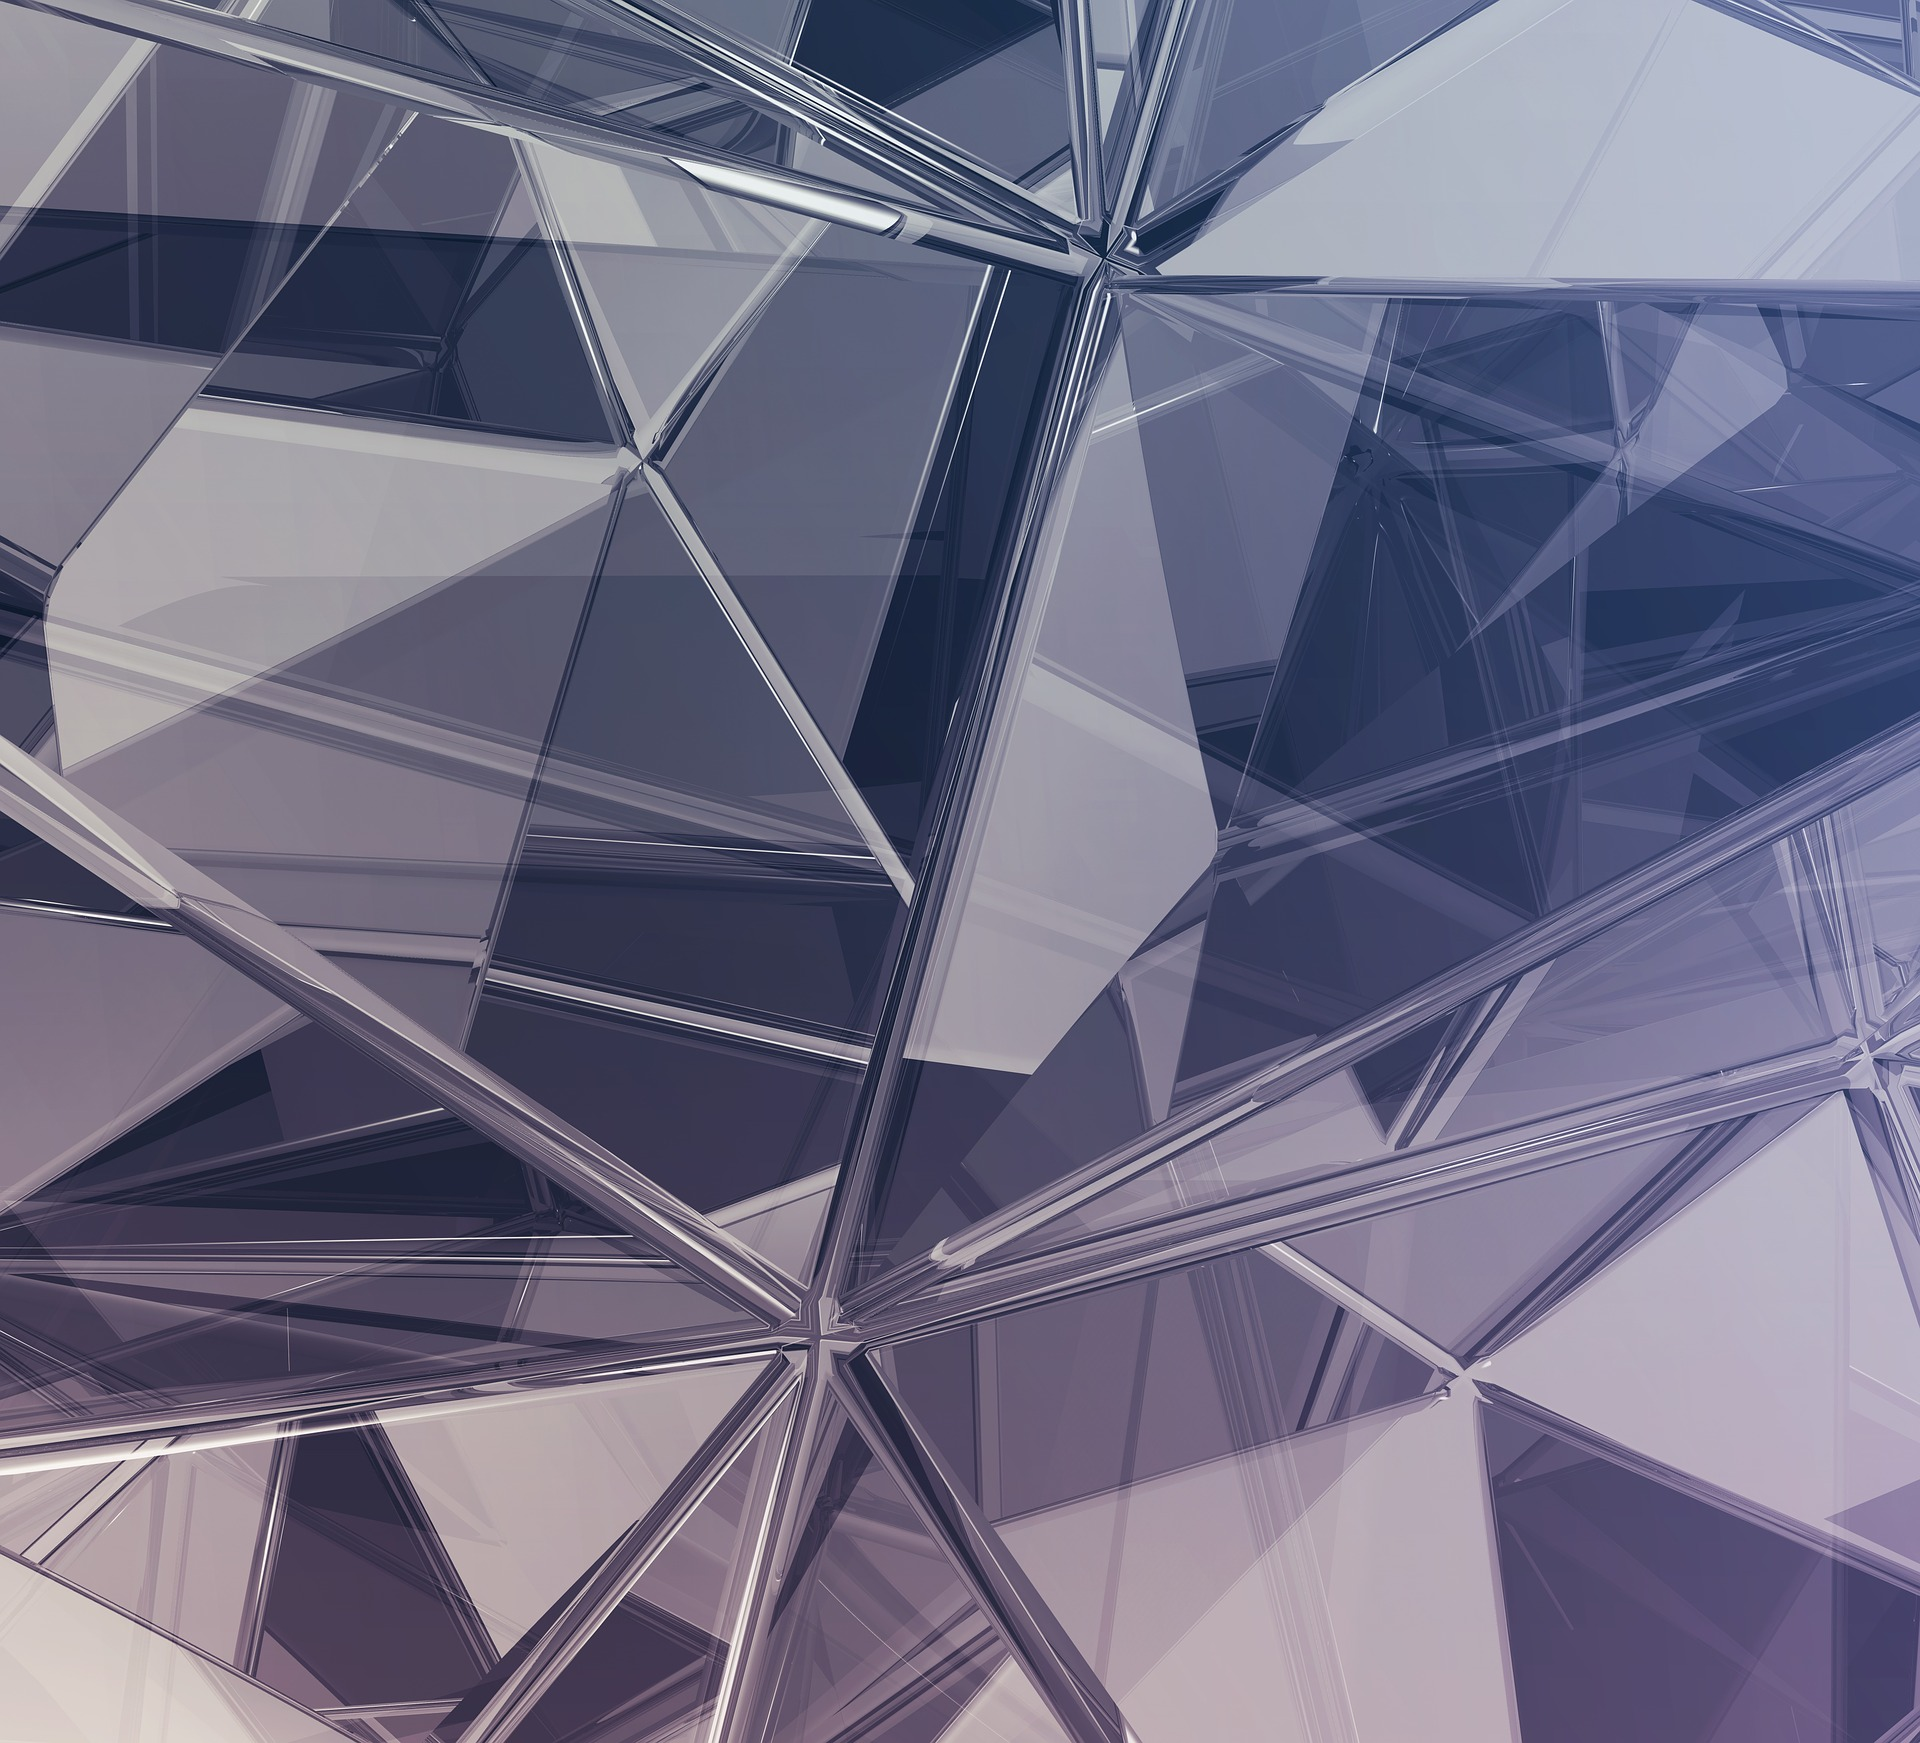 abstract-background-1061121_1920